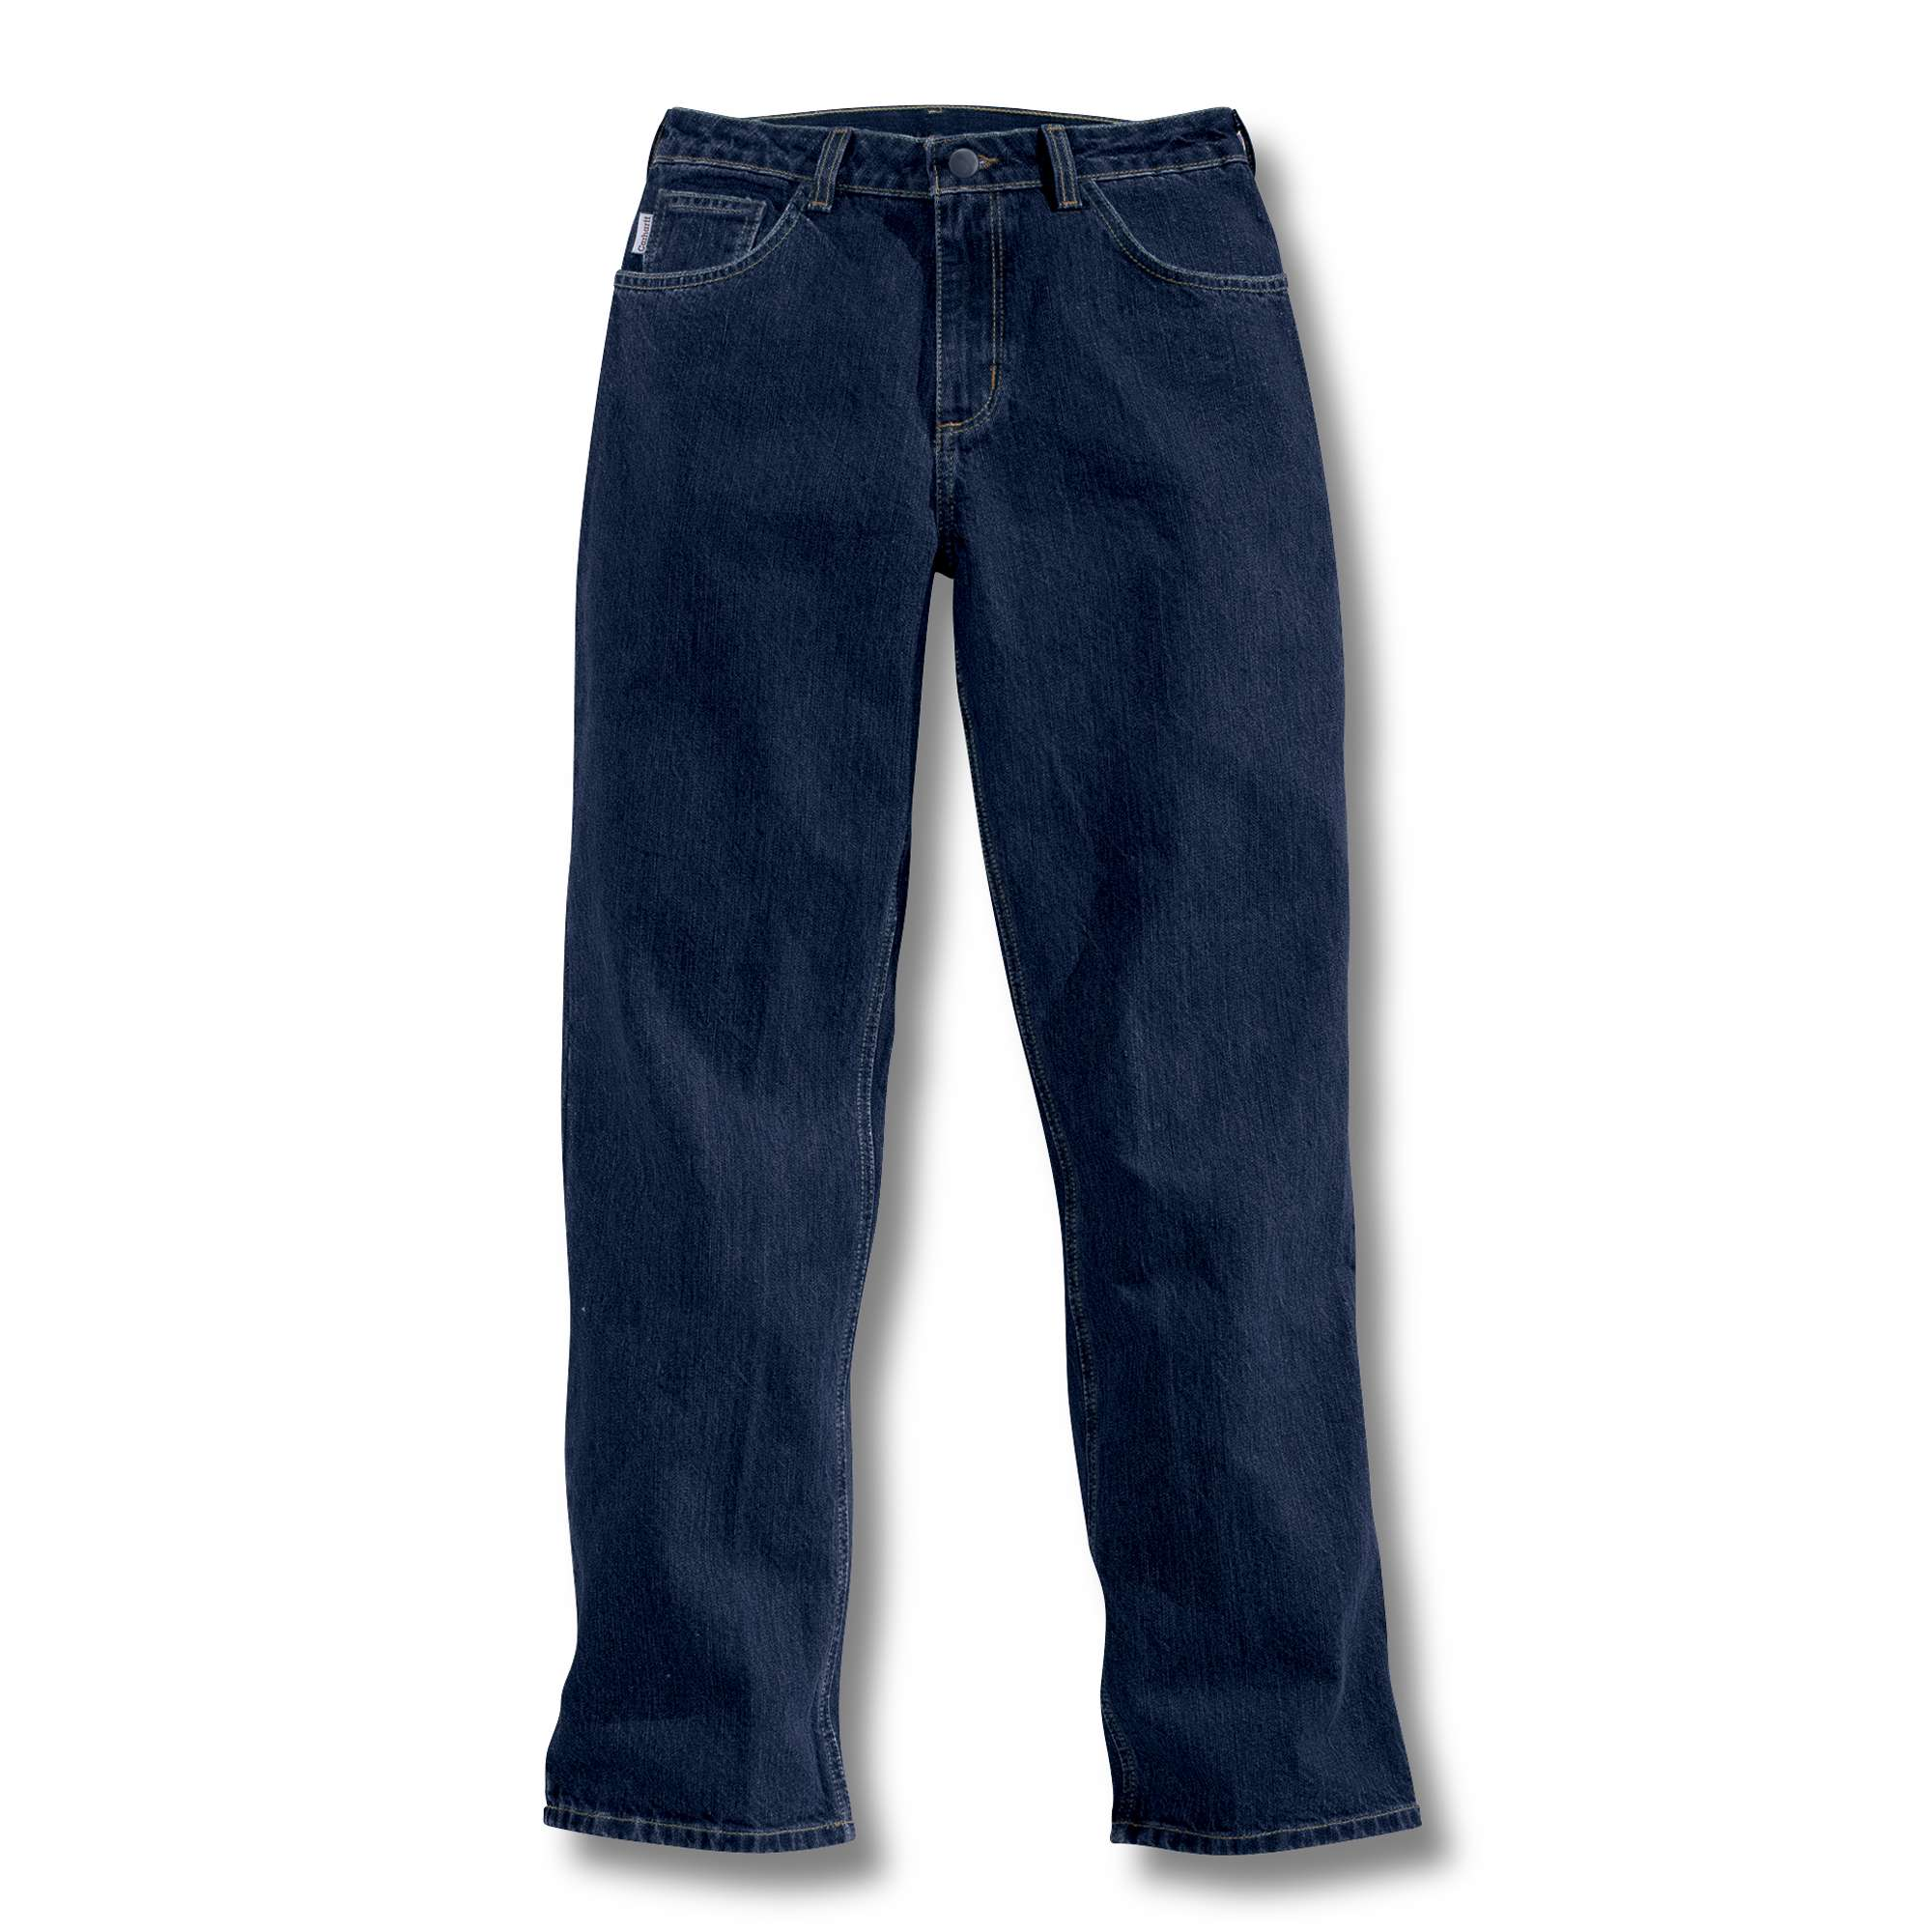 Carhartt Flame-resistant Relaxed Fit Denim Jean Denim 10 X 28